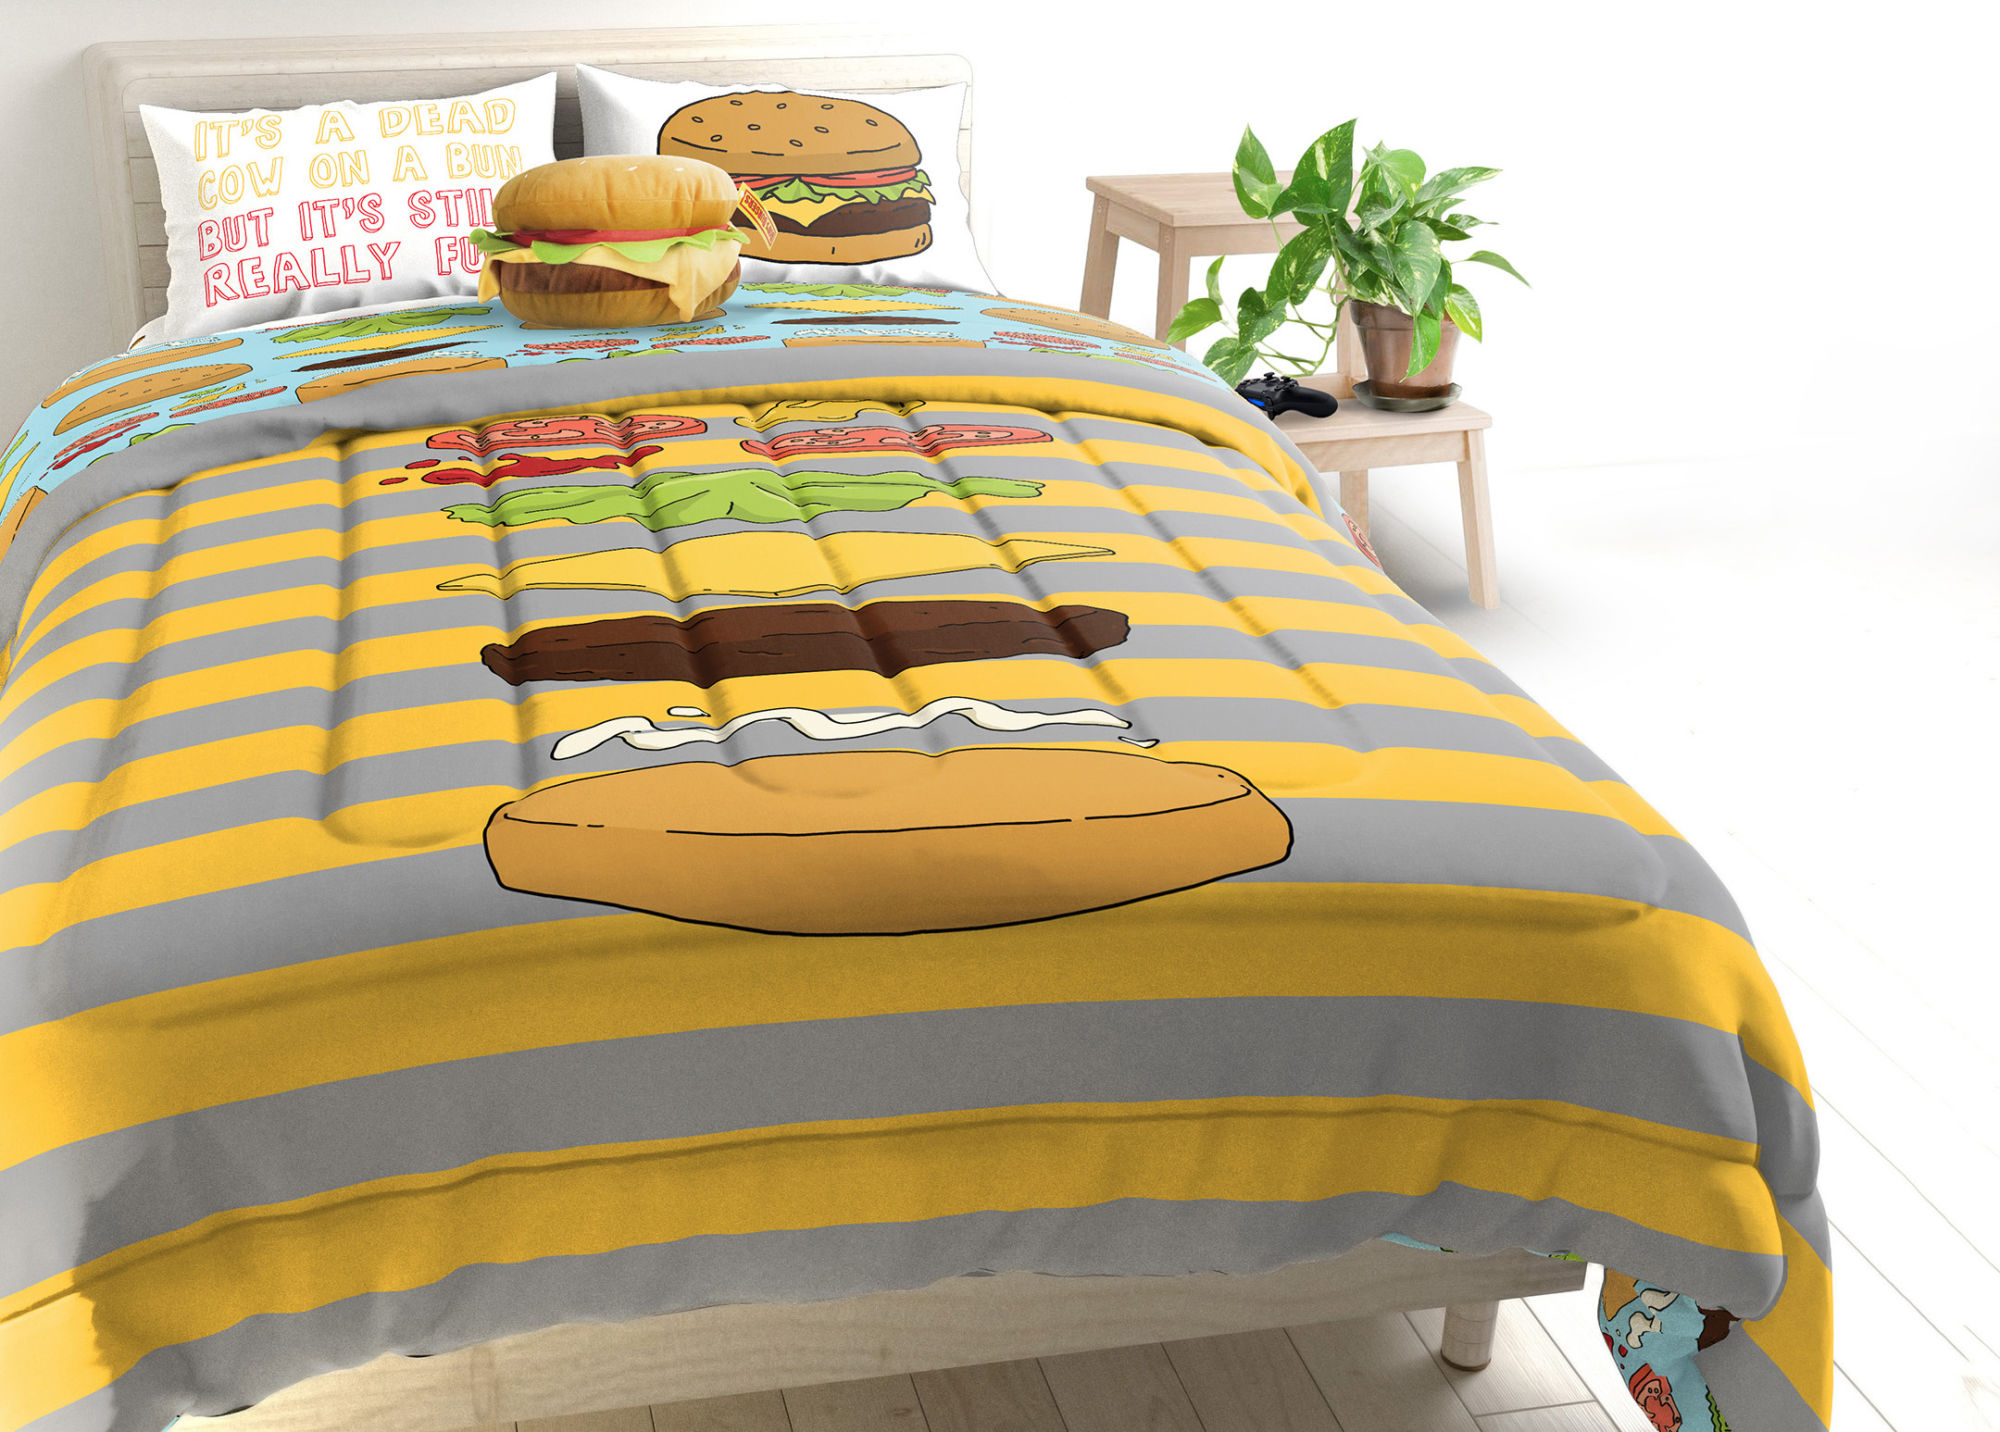 Bob's Burgers Bedding - Jay Franco - Target Exclusive- final